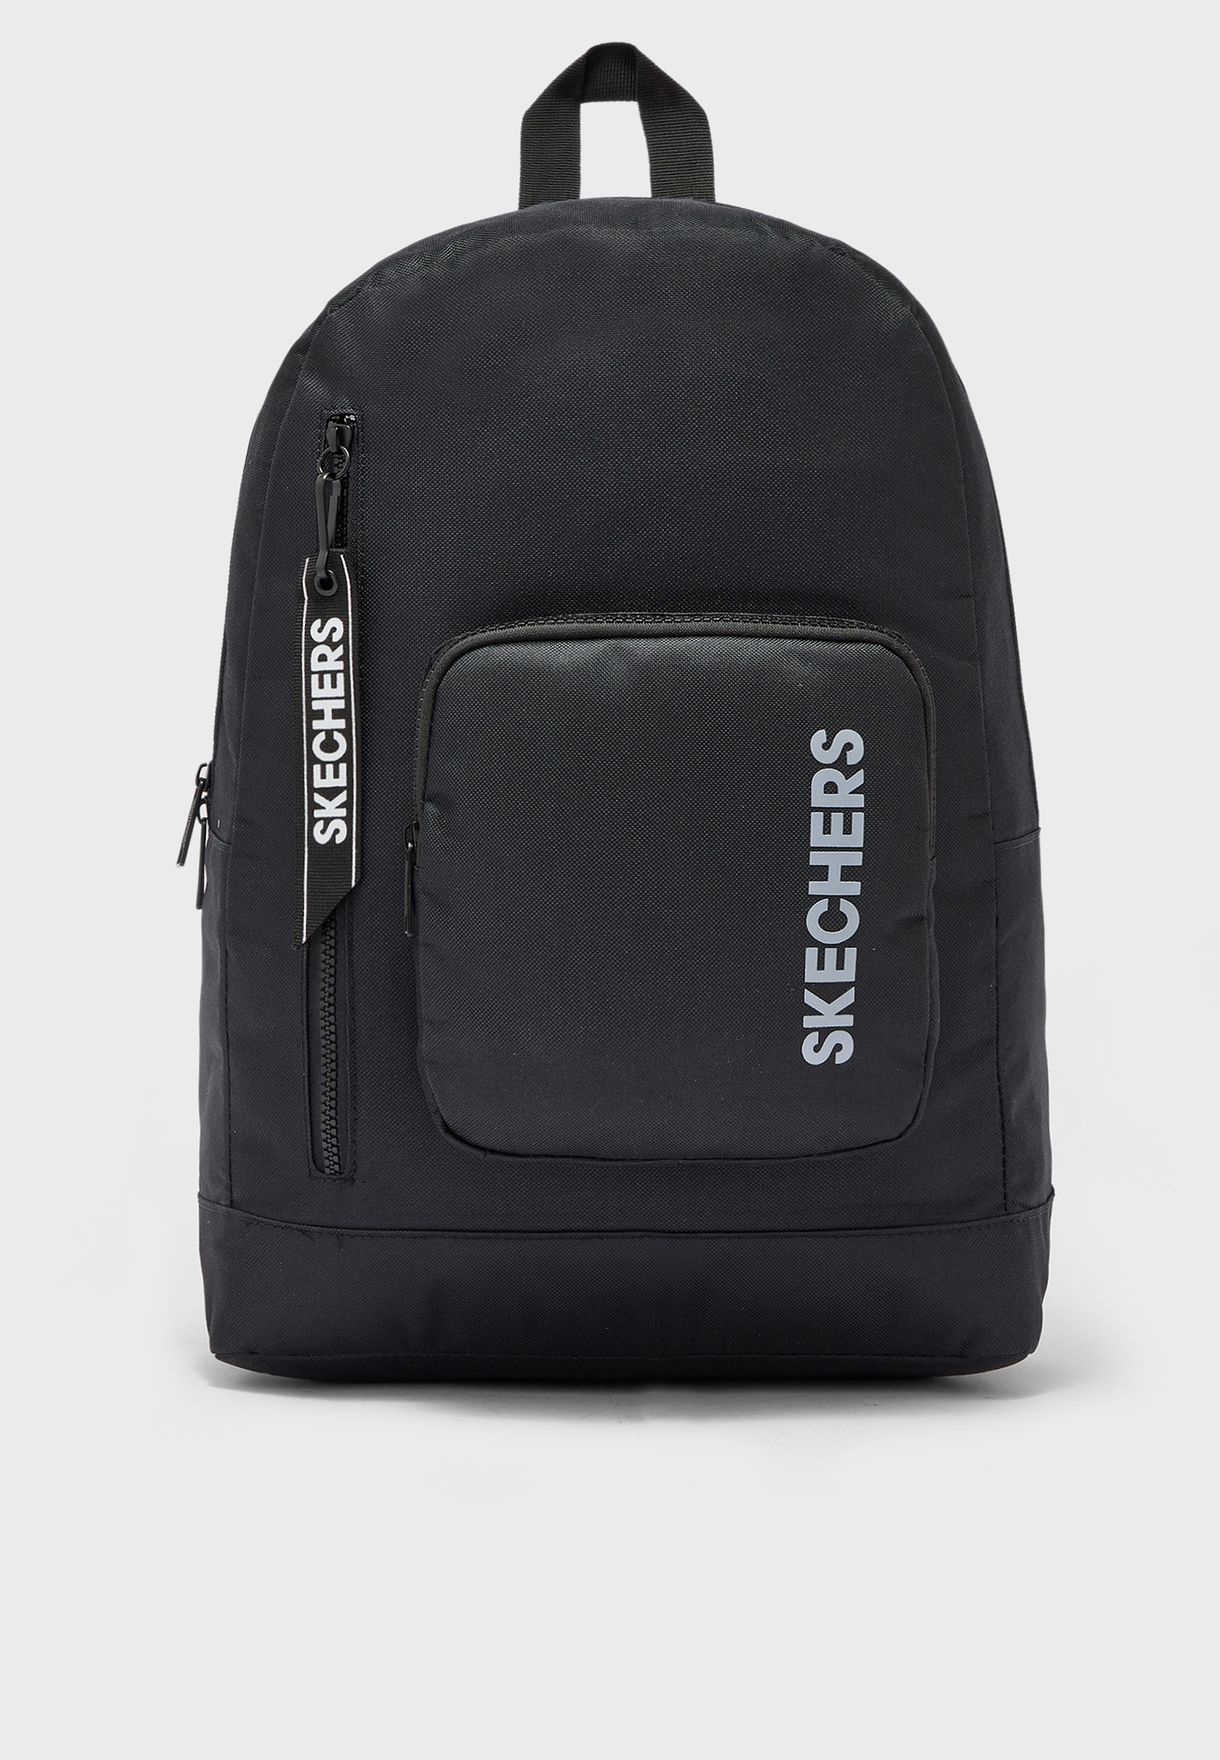 skechers bag